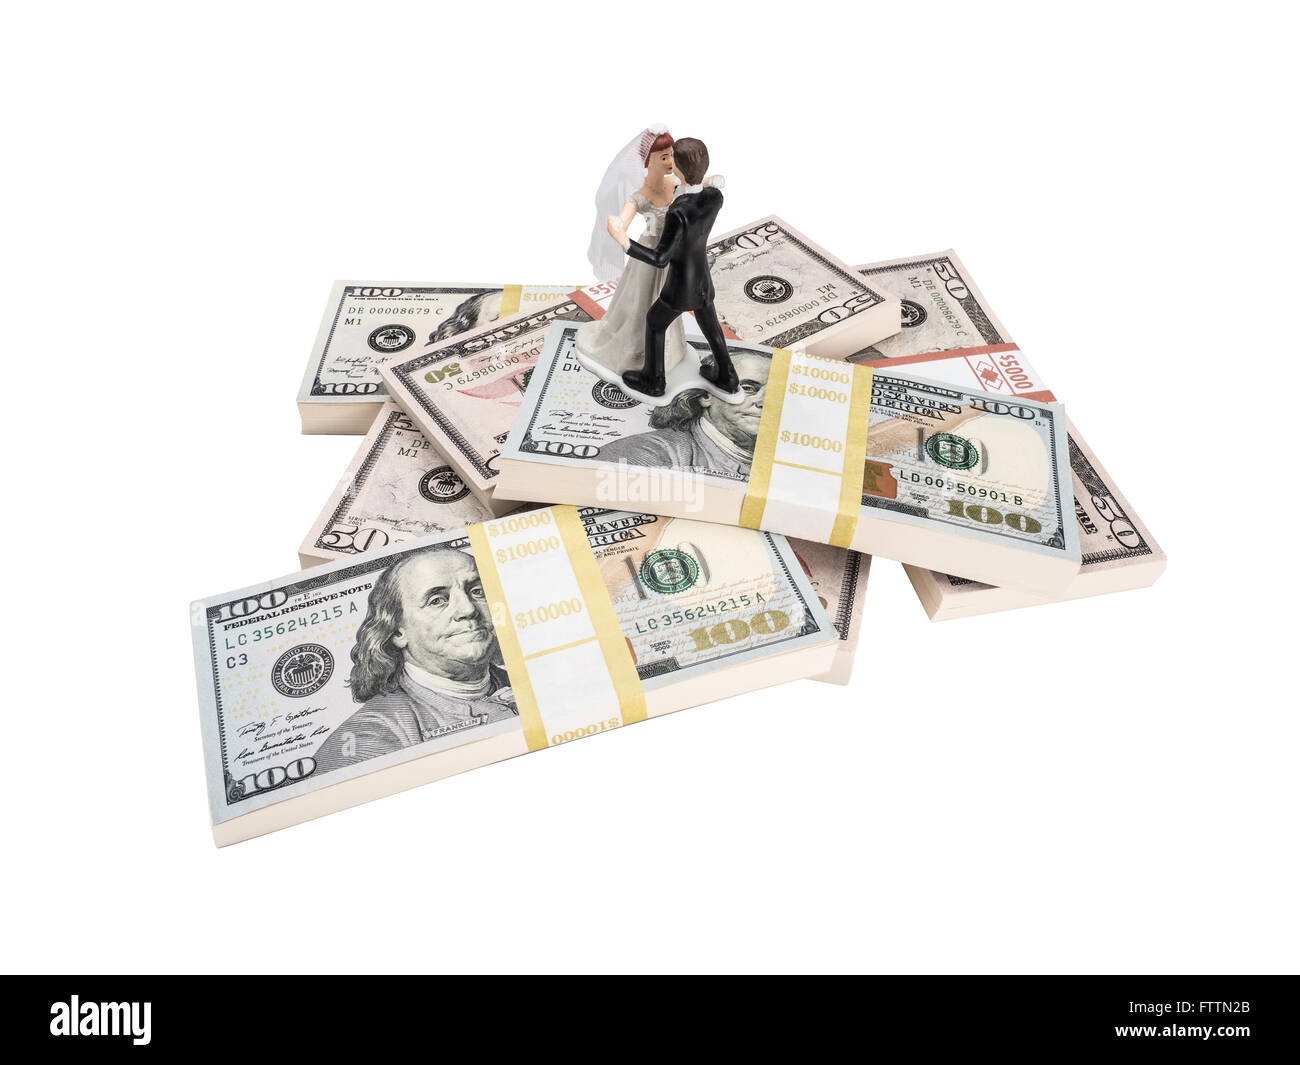 Photograph of bride and groom figurines dancing on top of stacks of U.S. paper currency. - Stock Image